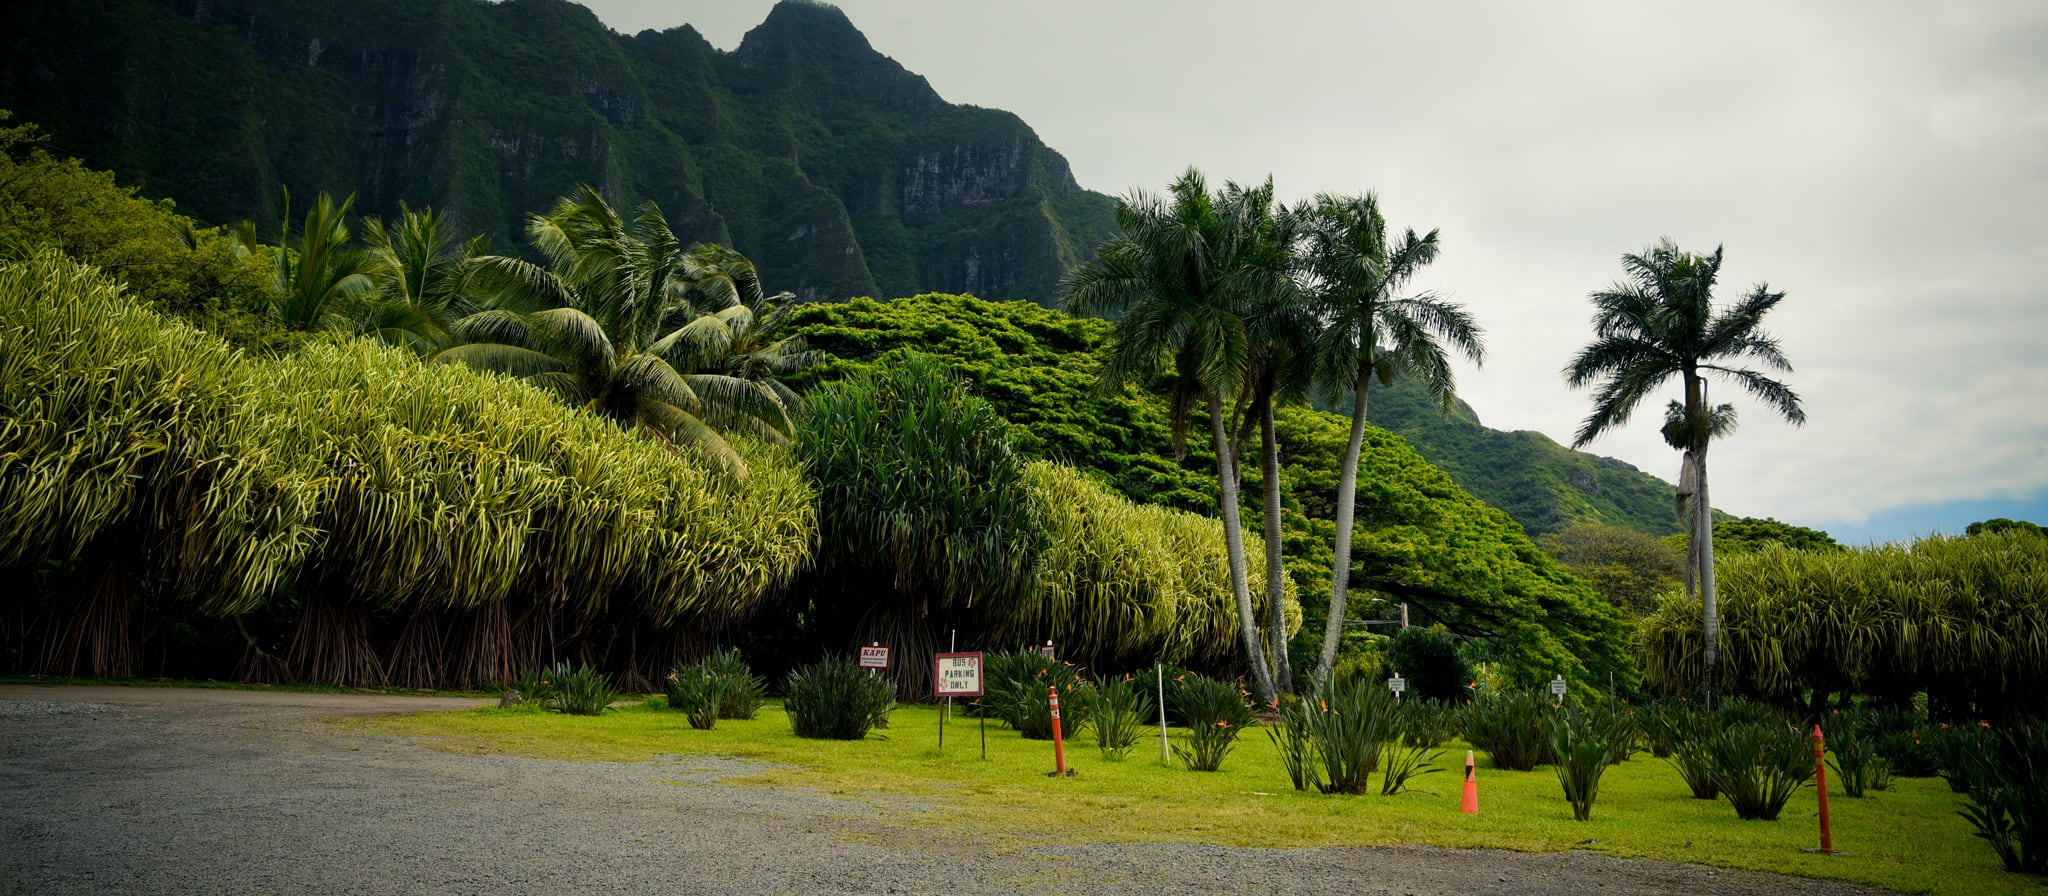 Tropical trees and windswept vegetation at the base of jagged mountain peaks